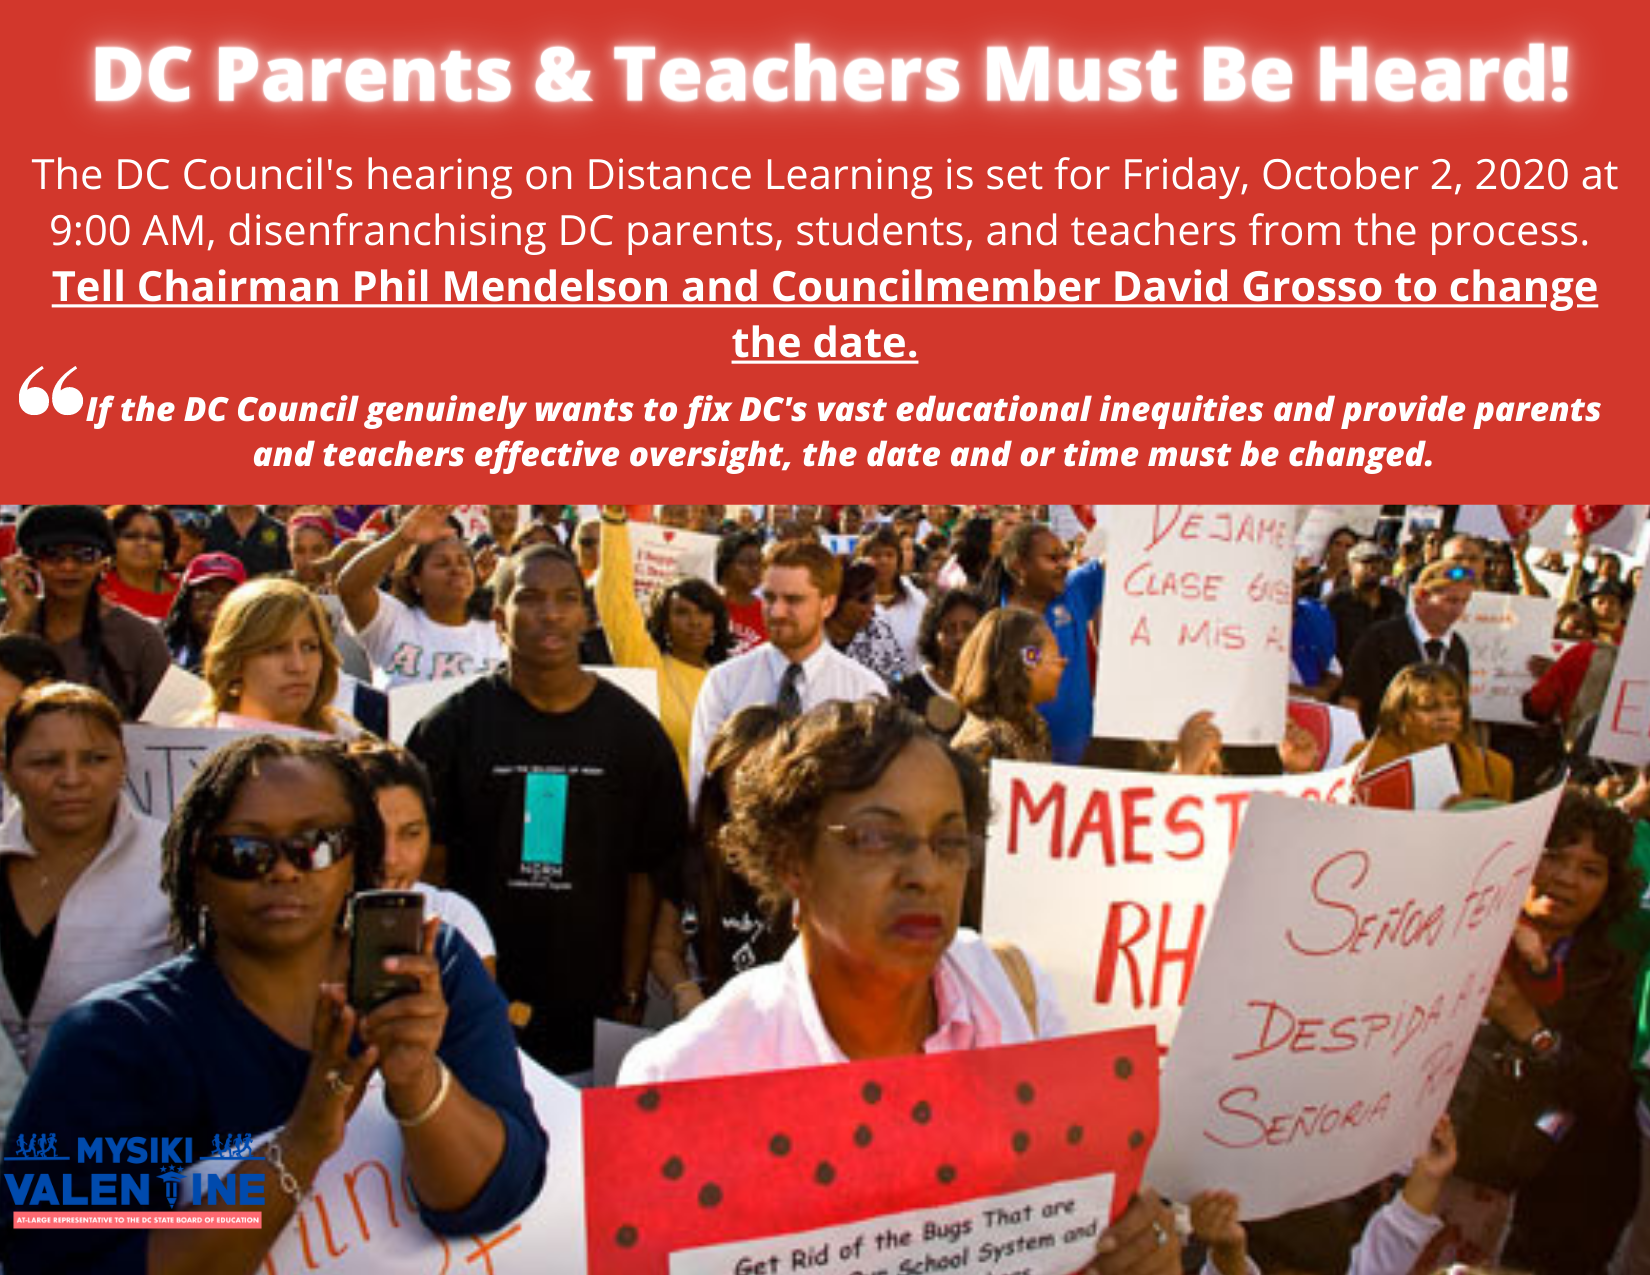 If_dc_council_truly_want_to_hear_from_parents_and_teachers_accross_the_distict_the_date_needs_to_be_changed_(2)